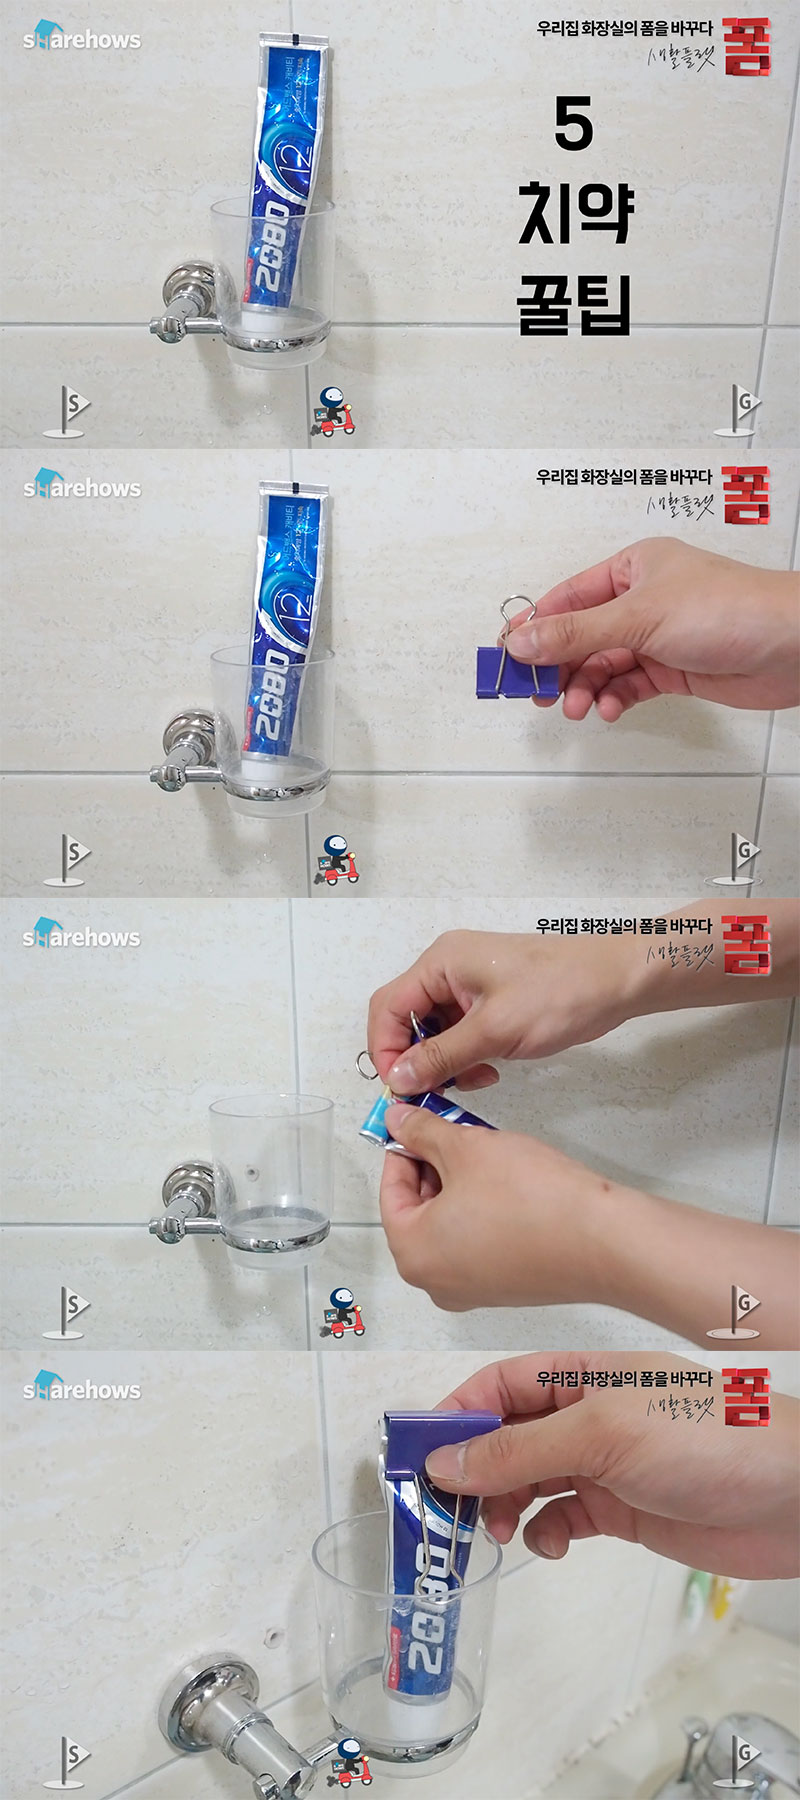 bathroom life hacks 16 05